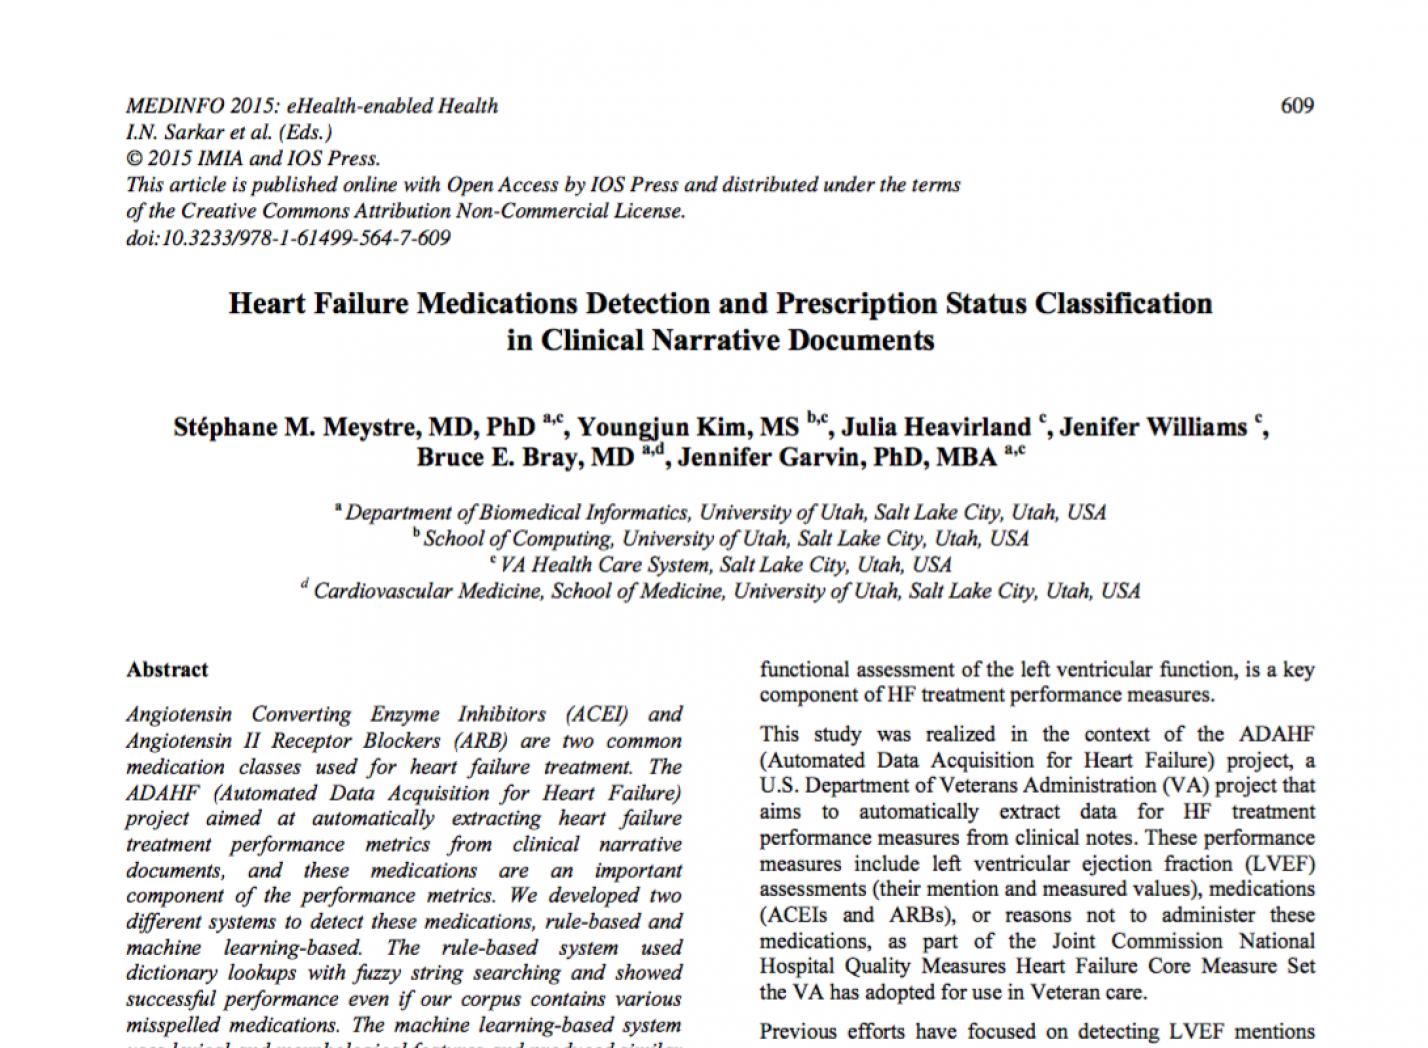 Heart Failure Medications Detection and Prescription Status Classification in Clinical Narrative Documents